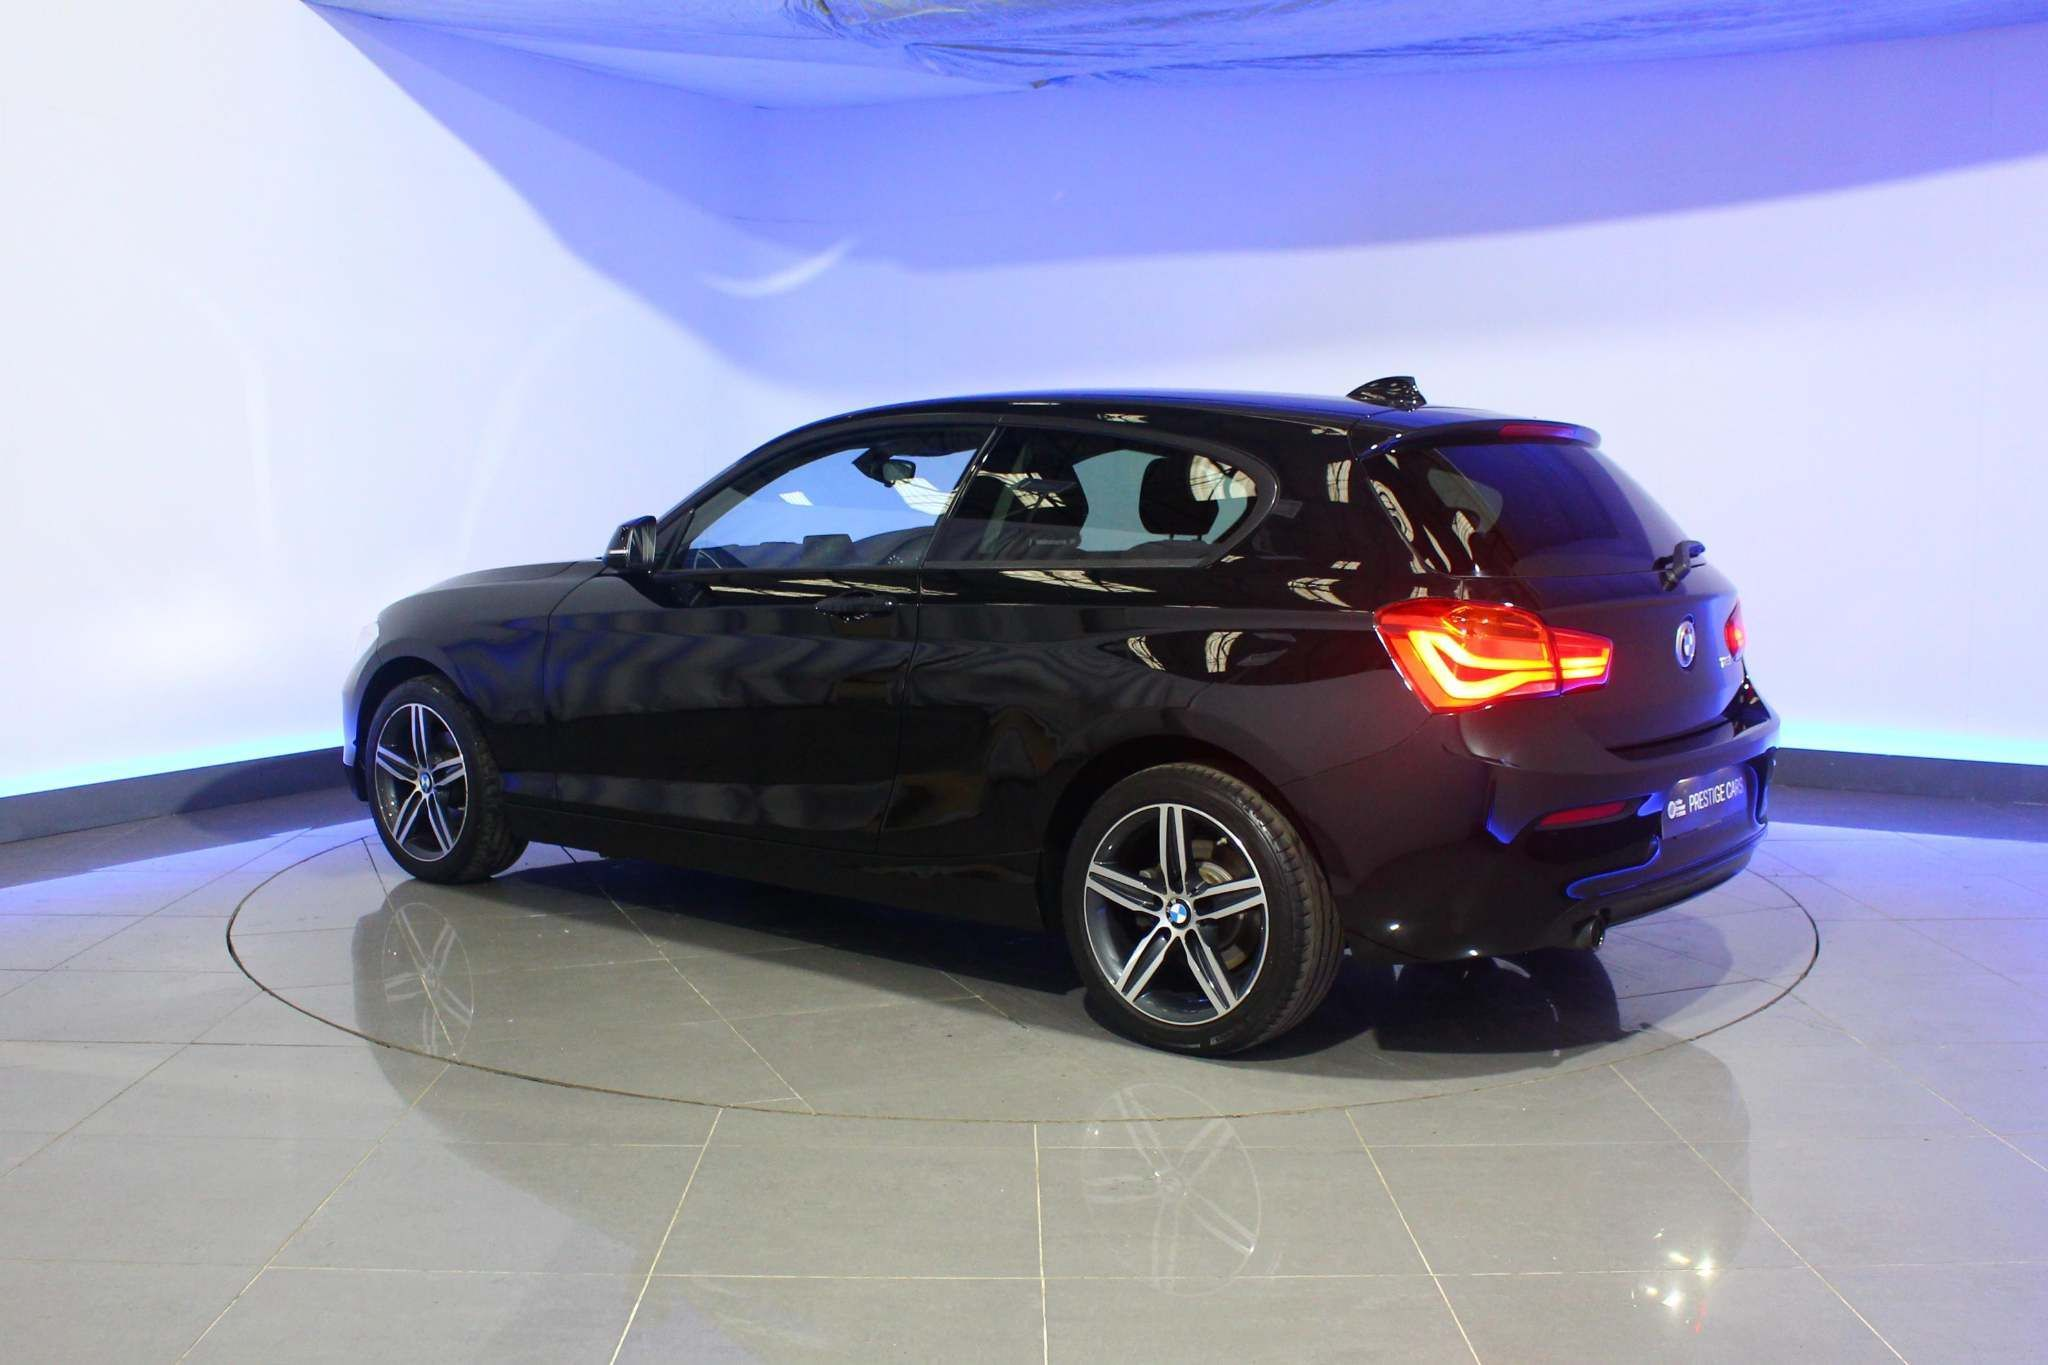 Used BMW 1 Series 1.5 118i Sport Sports Hatch (s/s) 3dr